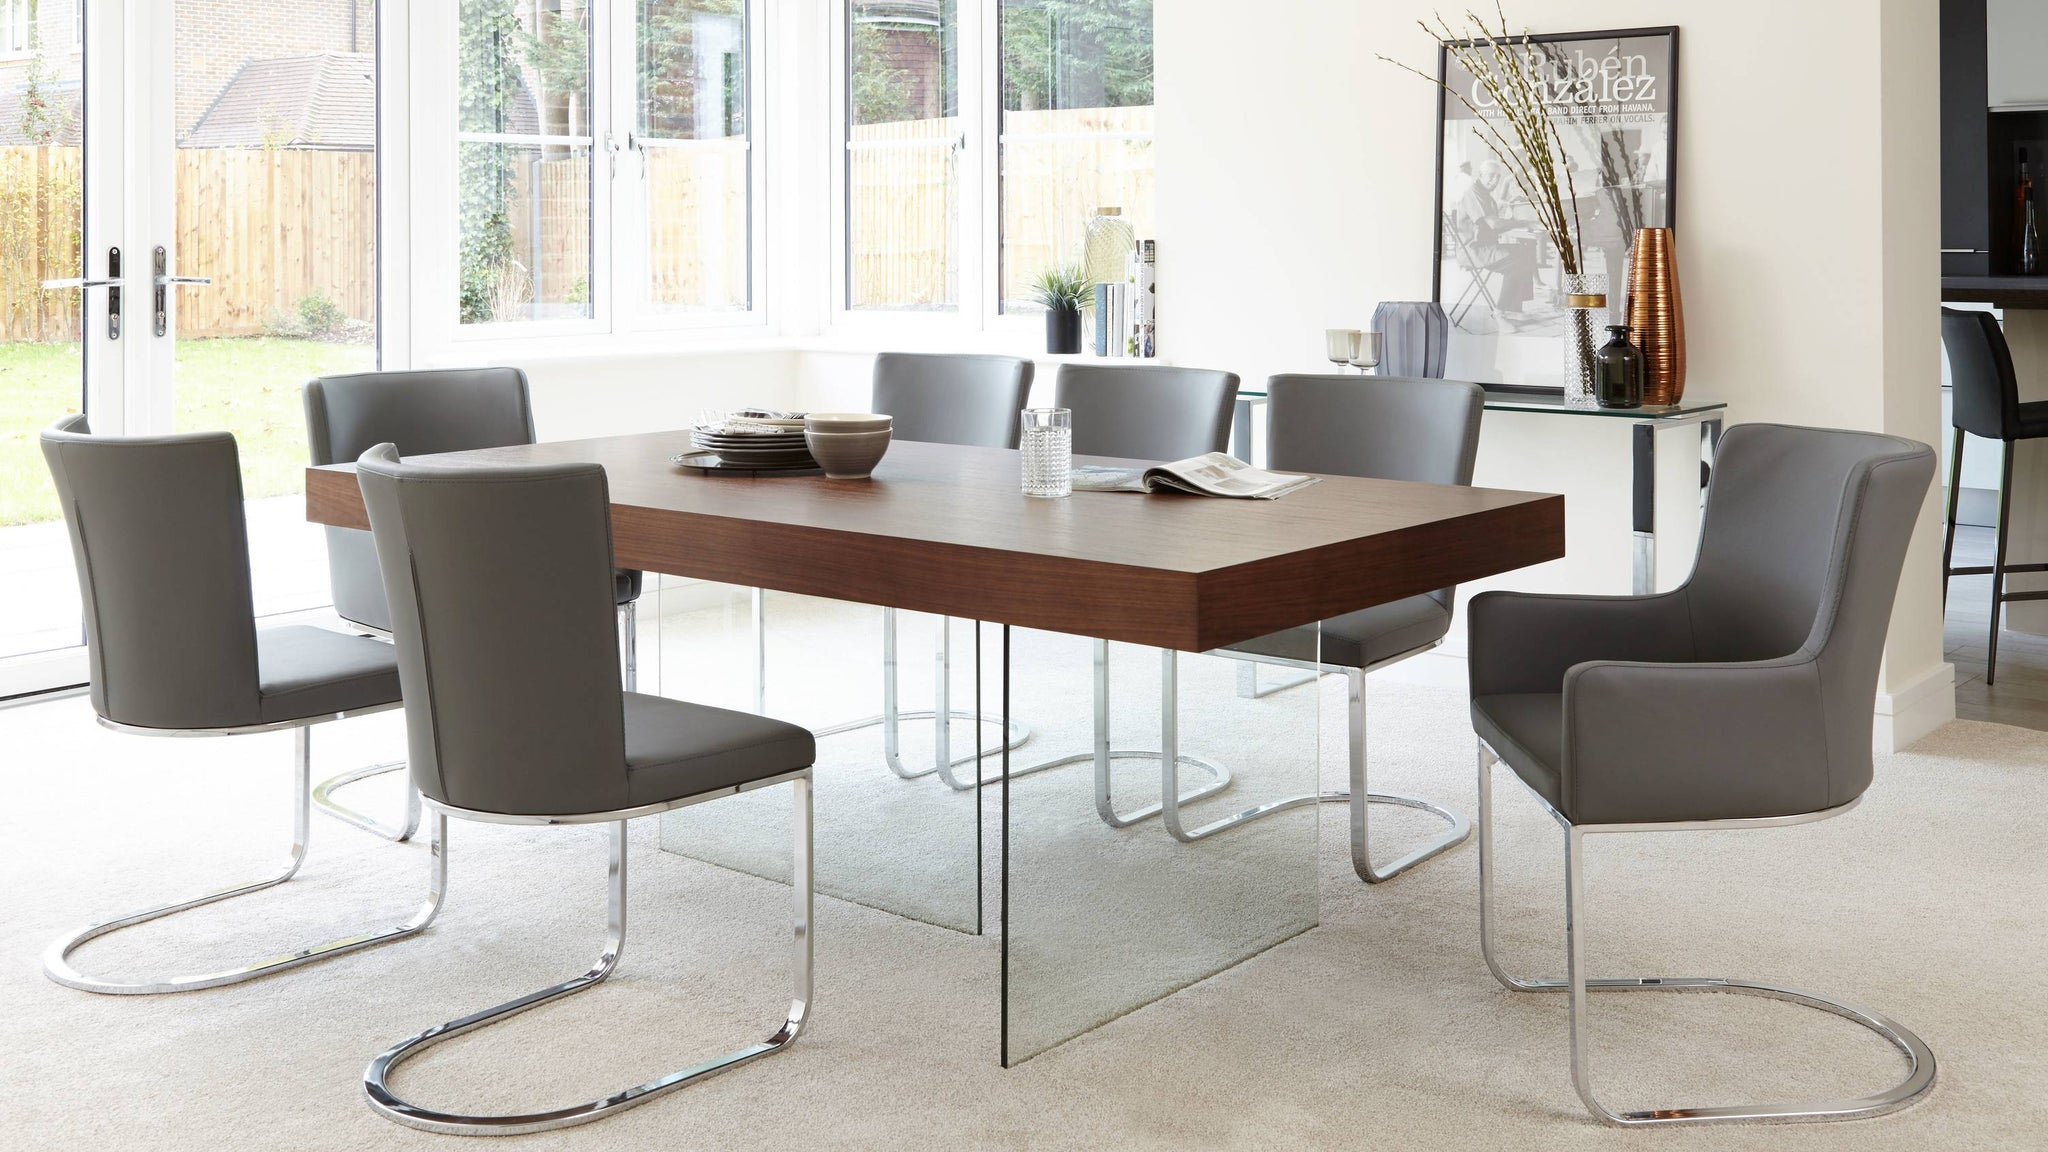 Tempered glass and wood veneer modern dining table